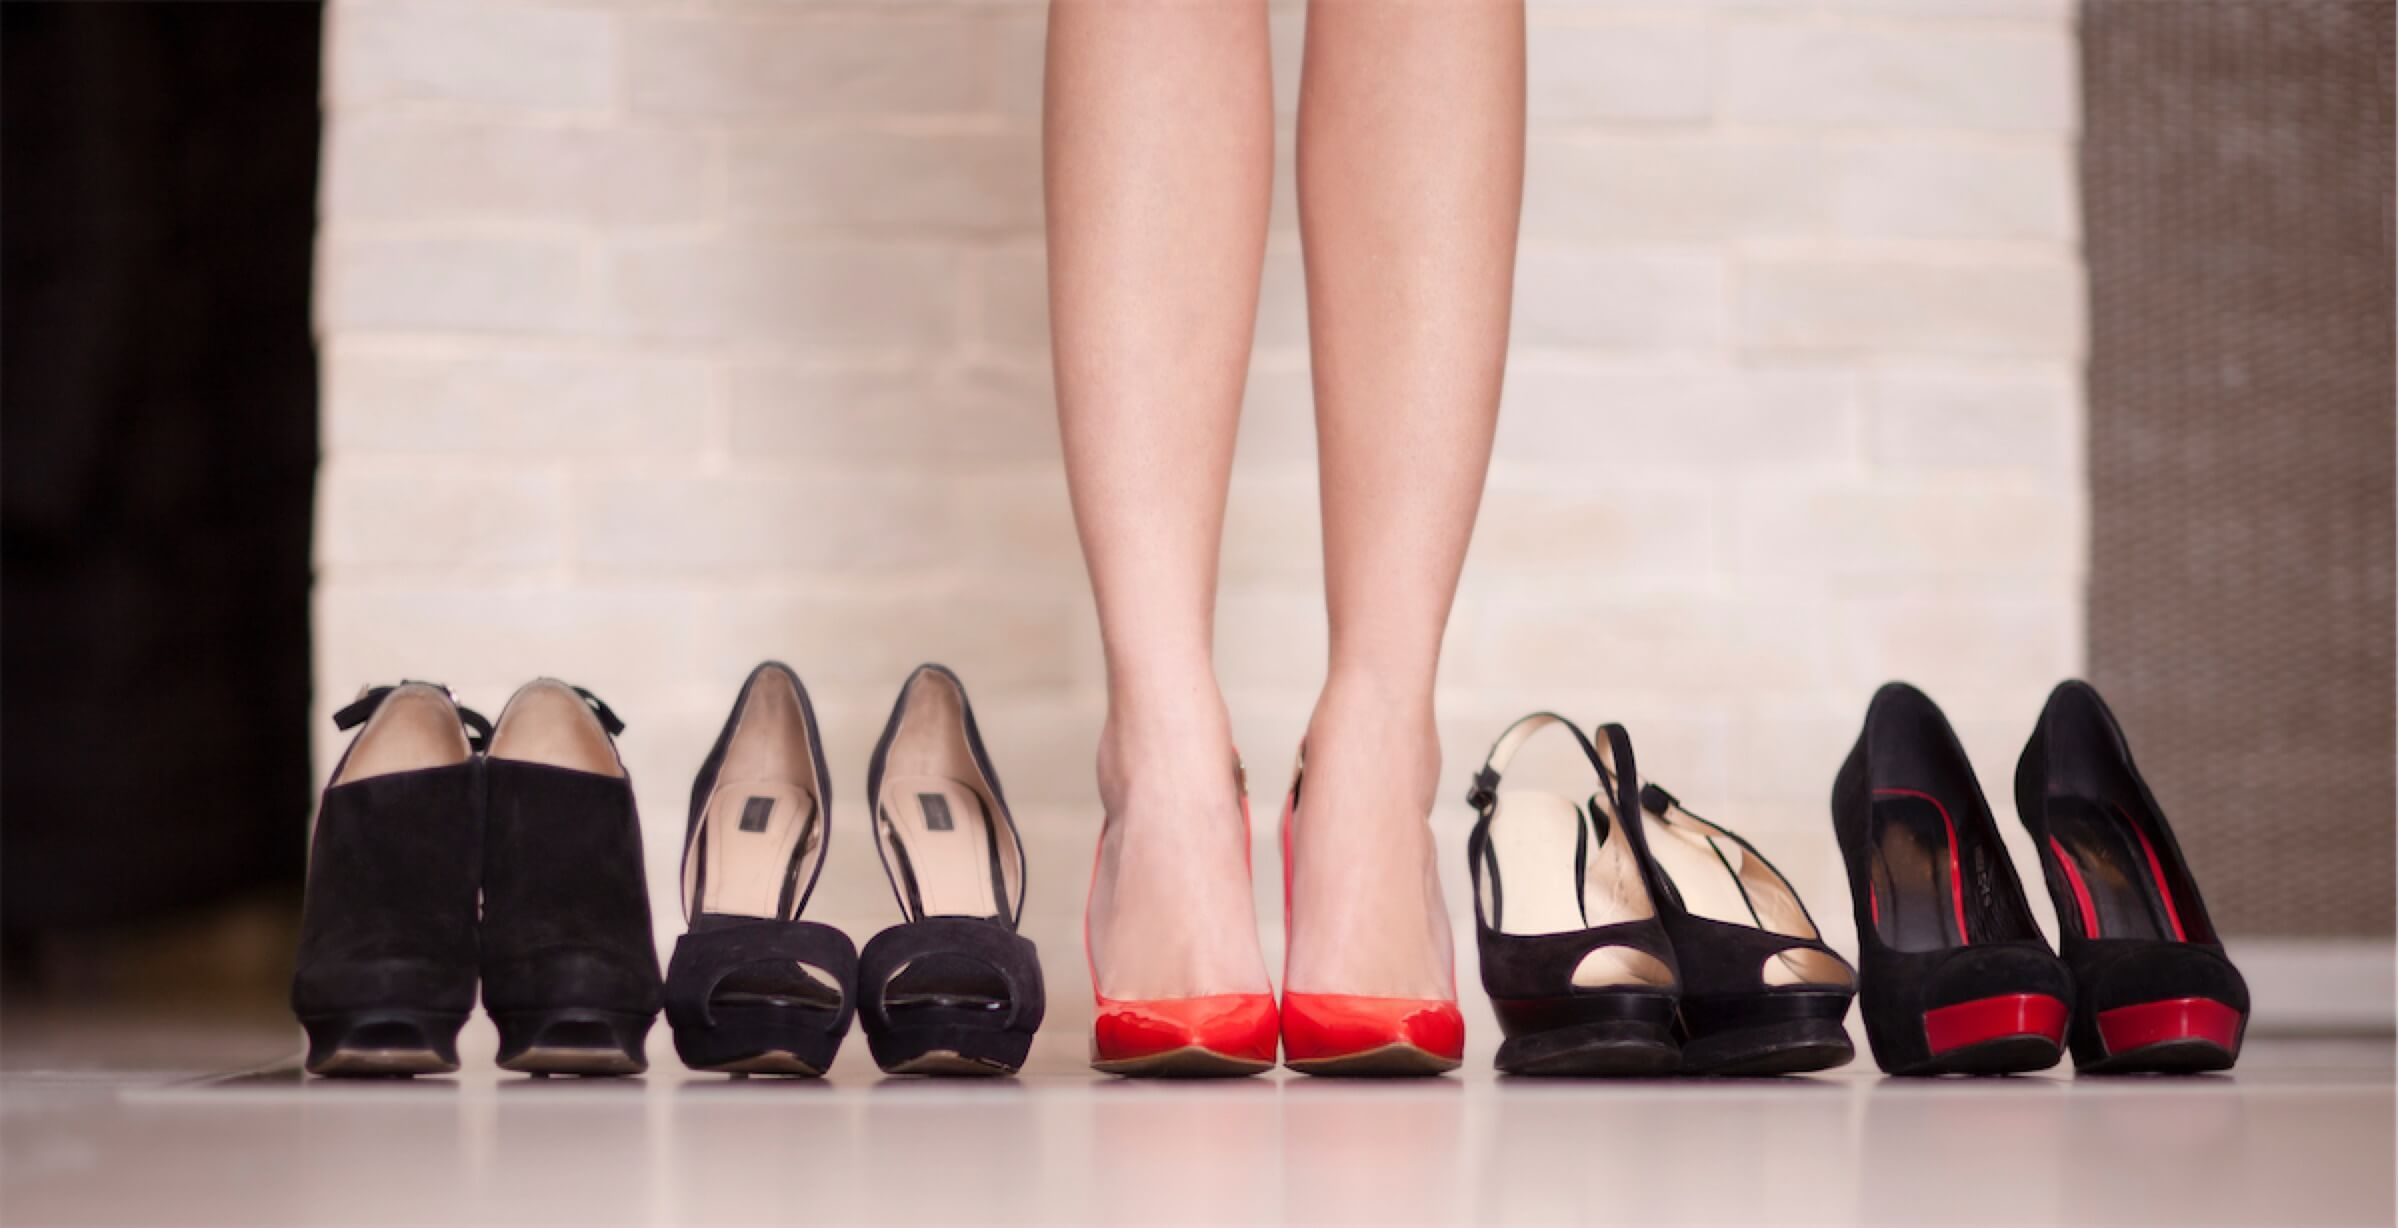 Woman trying out different shoes and high heels